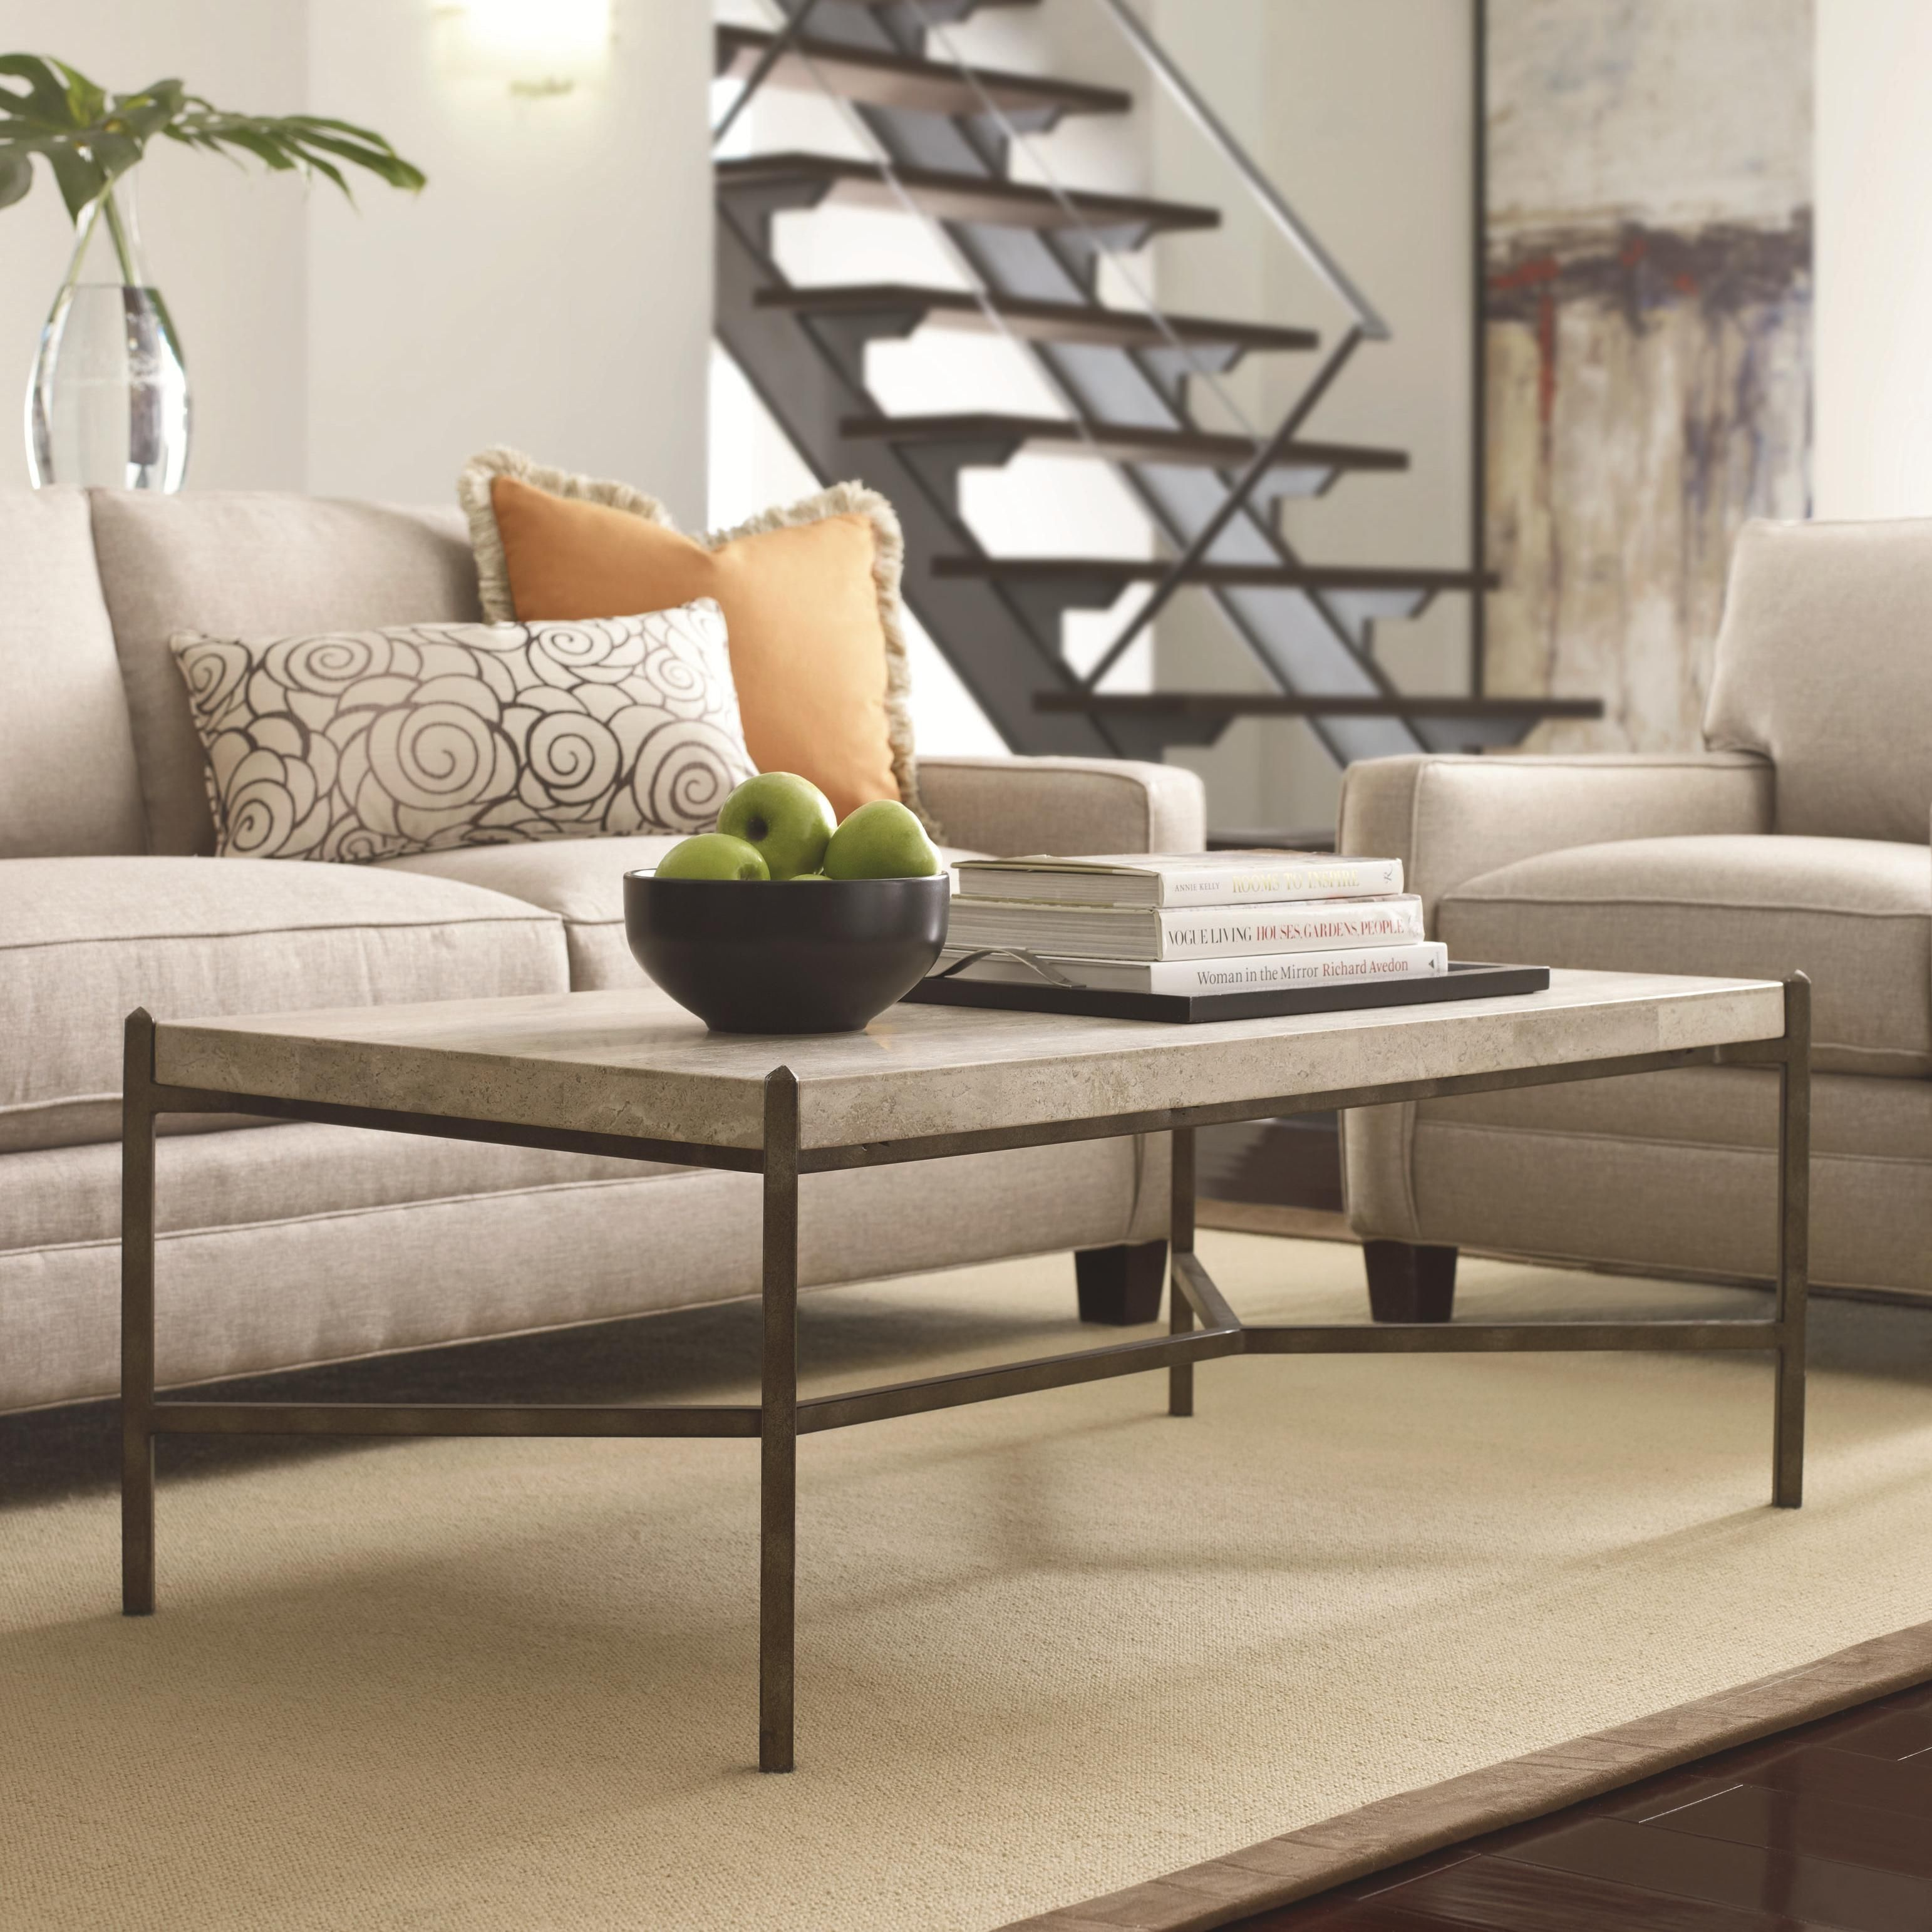 Cachet Rectangular Coffee Table W/ Travertine Stone Top By